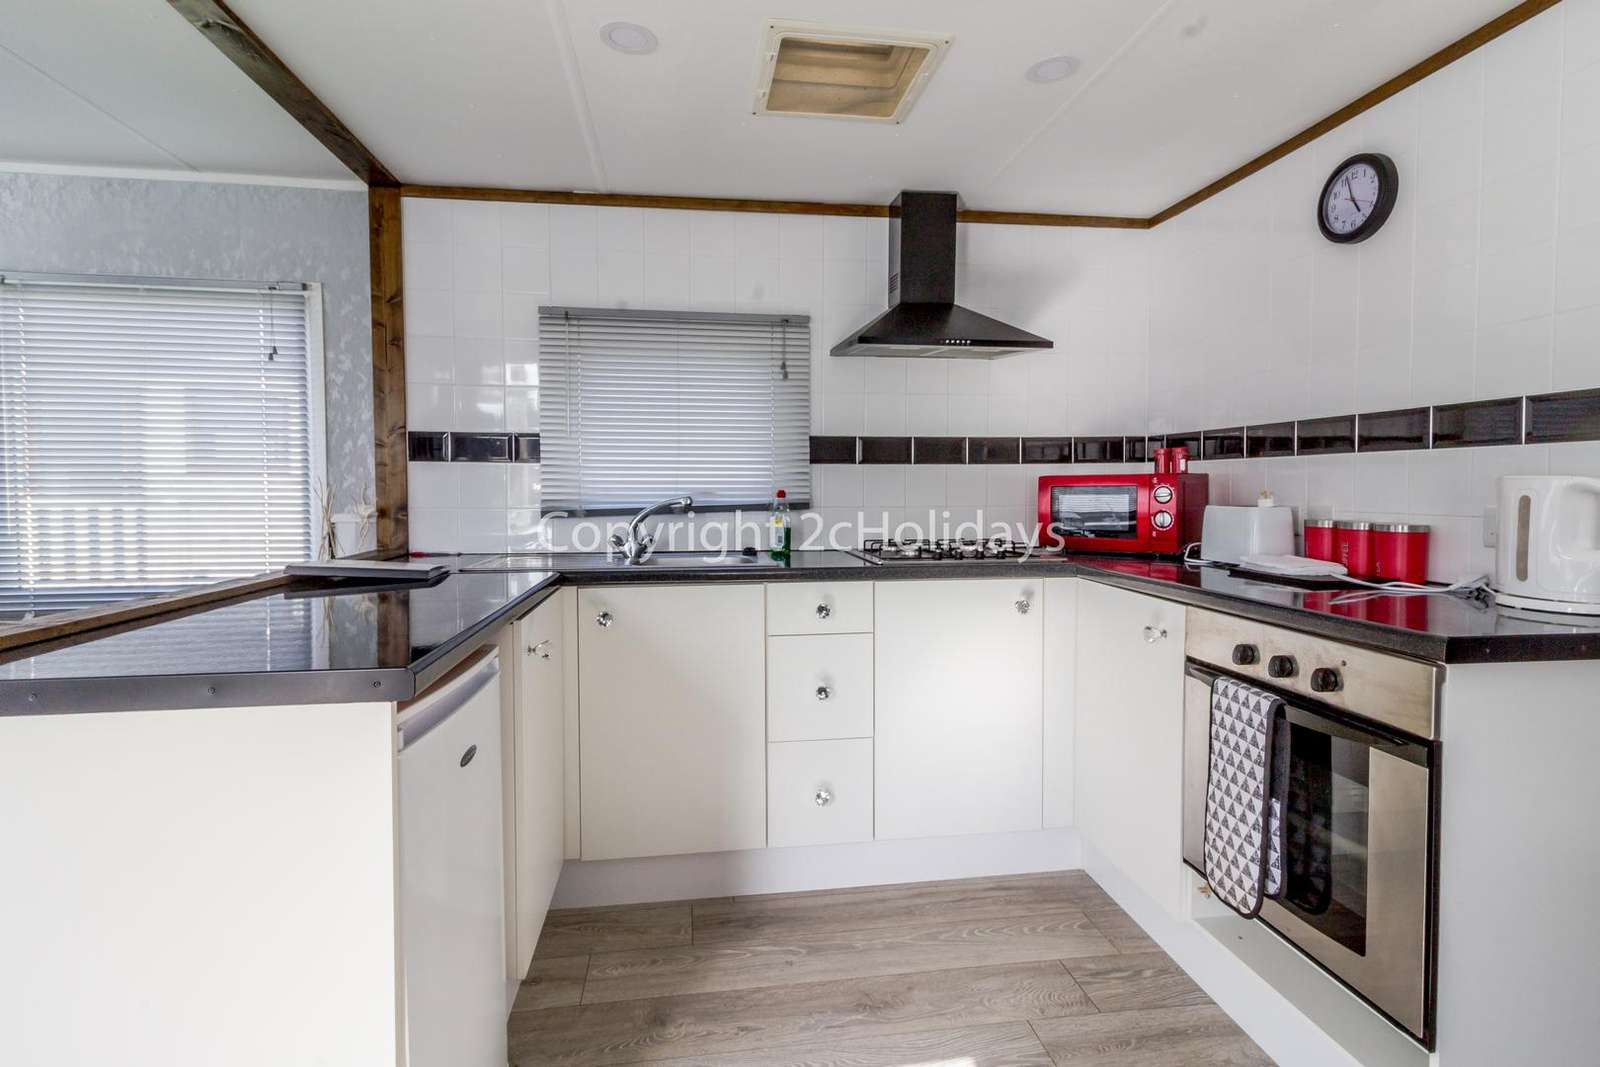 Kitchen space is ideal for a self catering holiday.